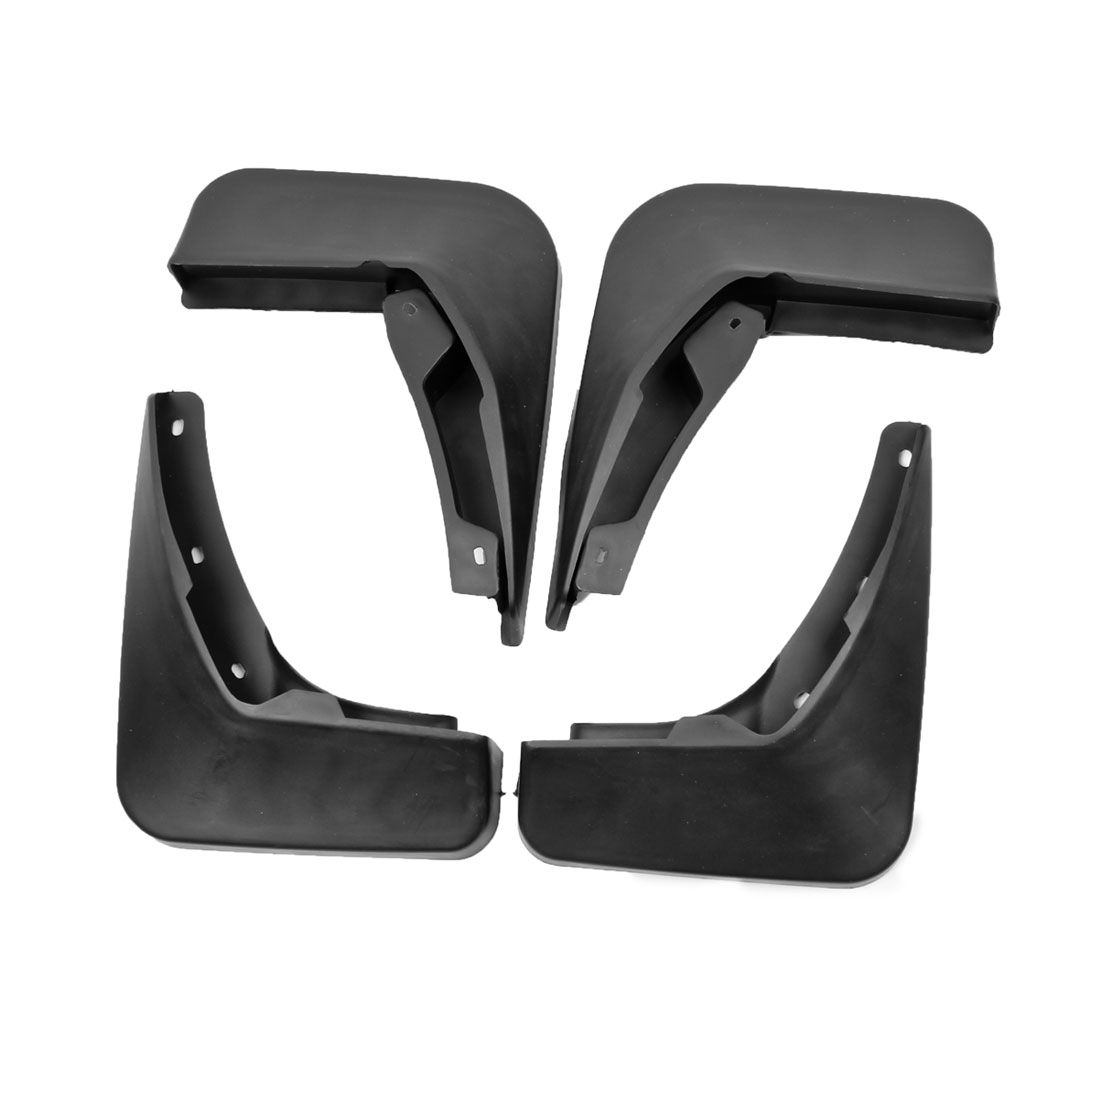 Black Splash Guards Front Rear Mud Flaps Protectors Set for Audi A6L 2012